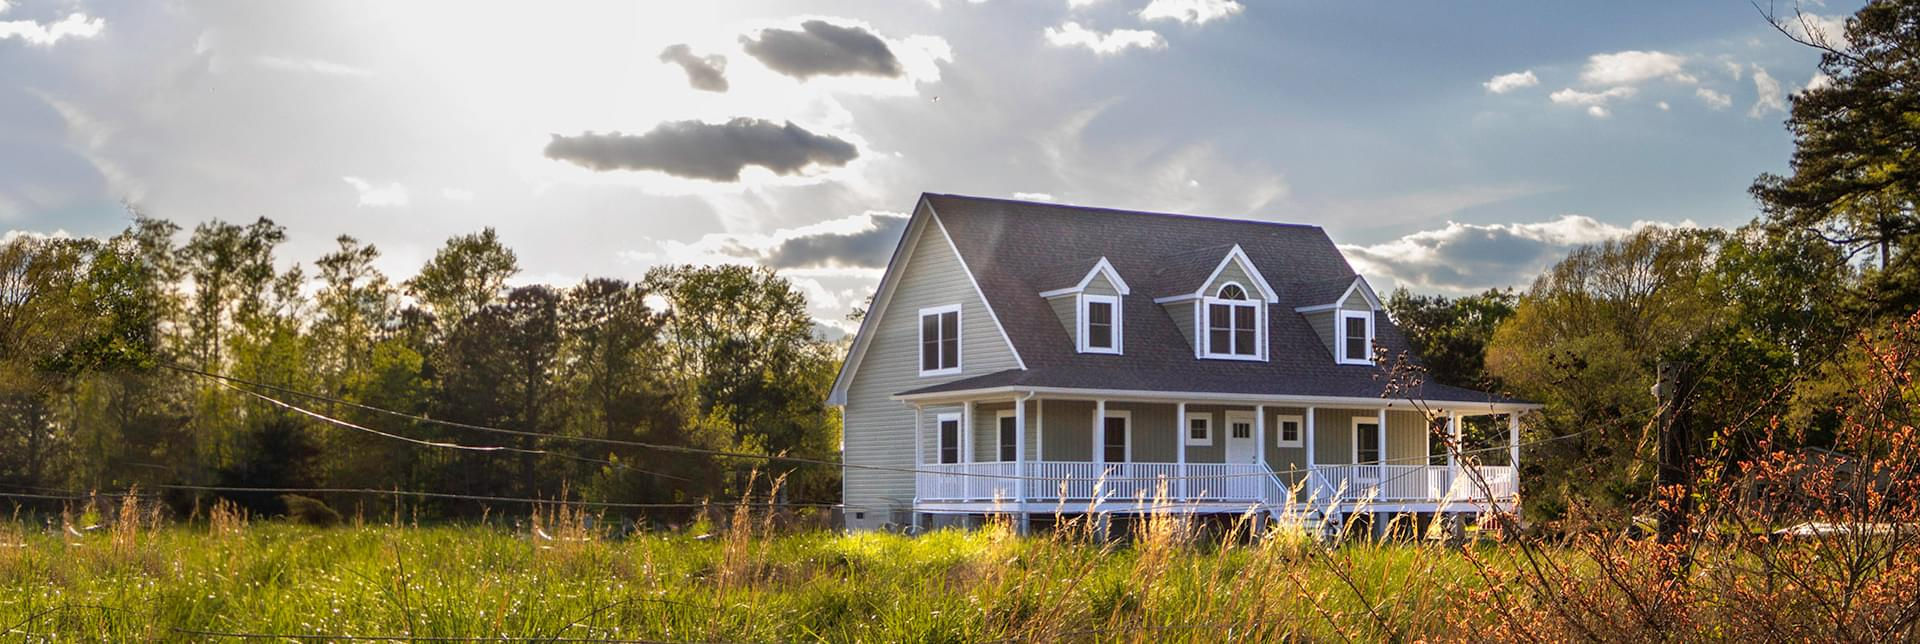 New Homes in Bedford County VA